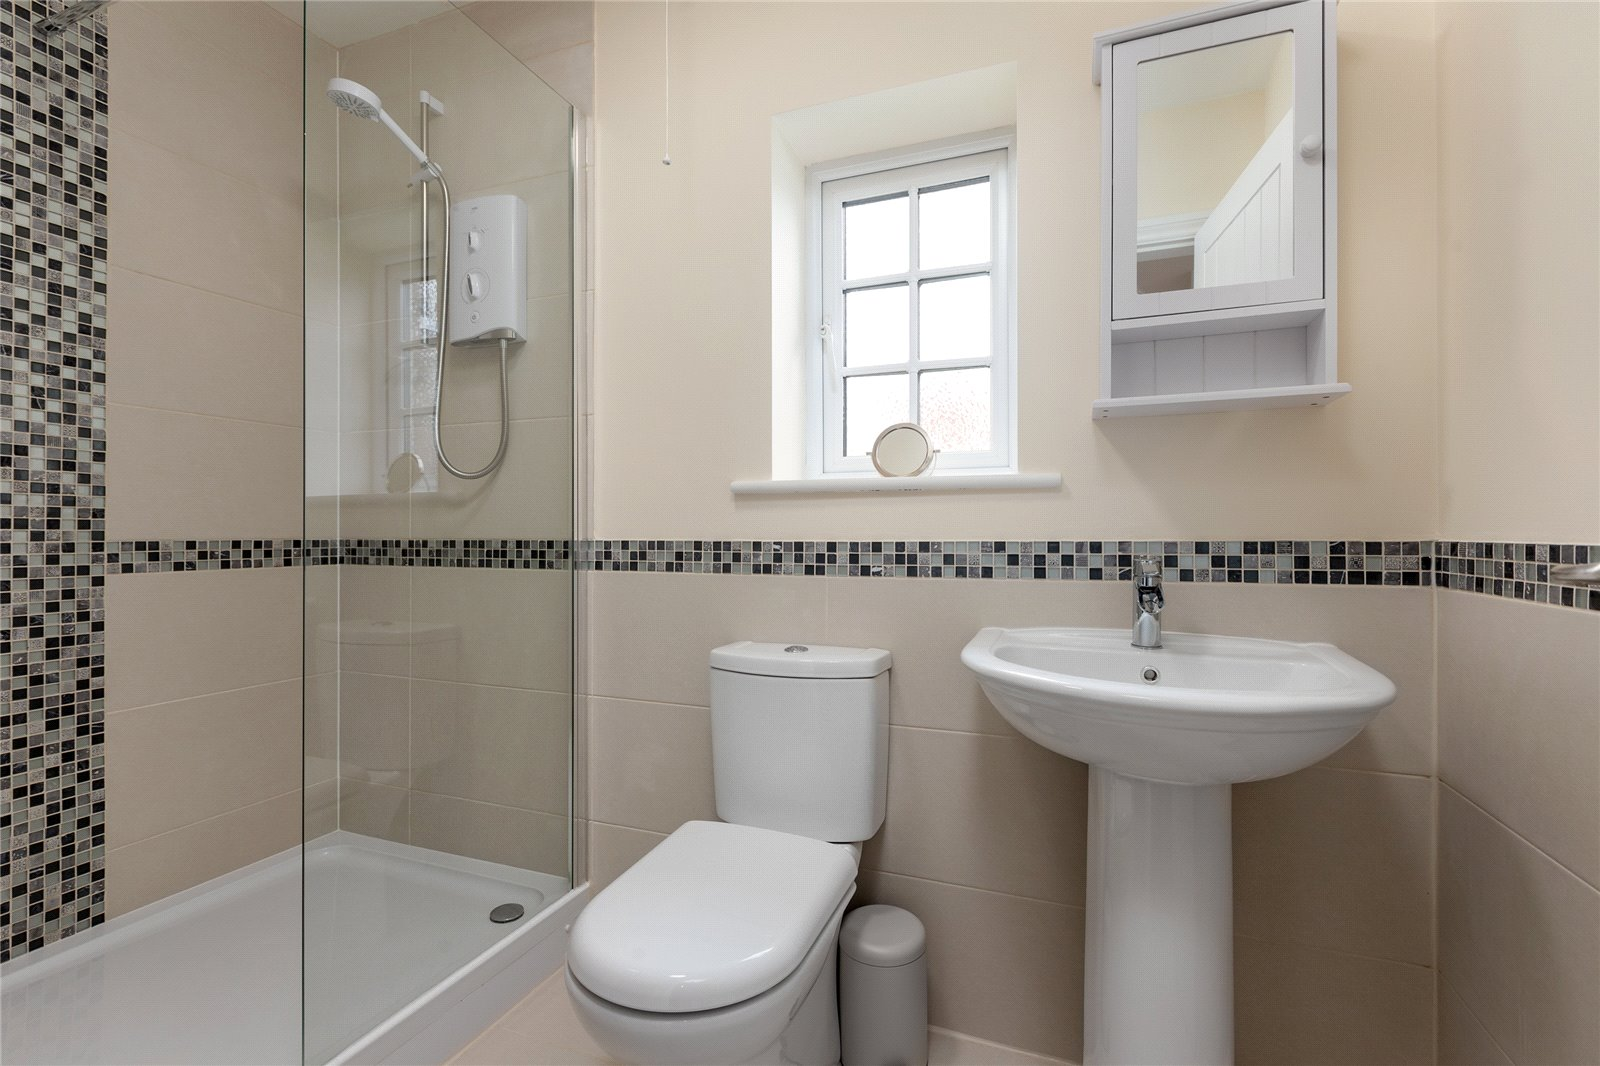 6 bed house for sale in Ladgate Lane, Middlesbrough  - Property Image 16